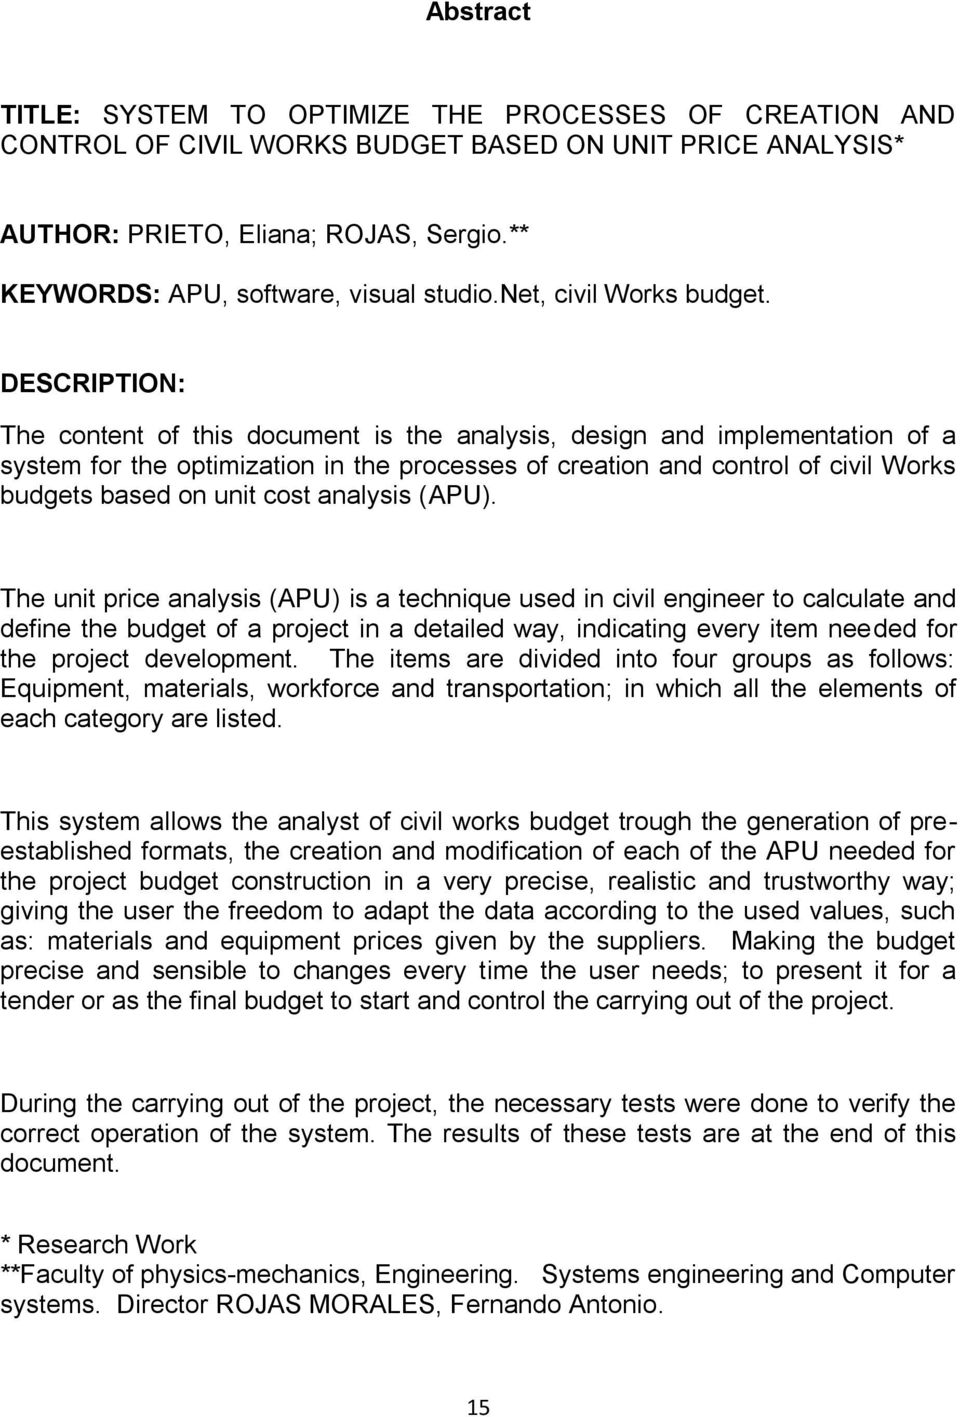 DESCRIPTION: The content of this document is the analysis, design and implementation of a system for the optimization in the processes of creation and control of civil Works budgets based on unit